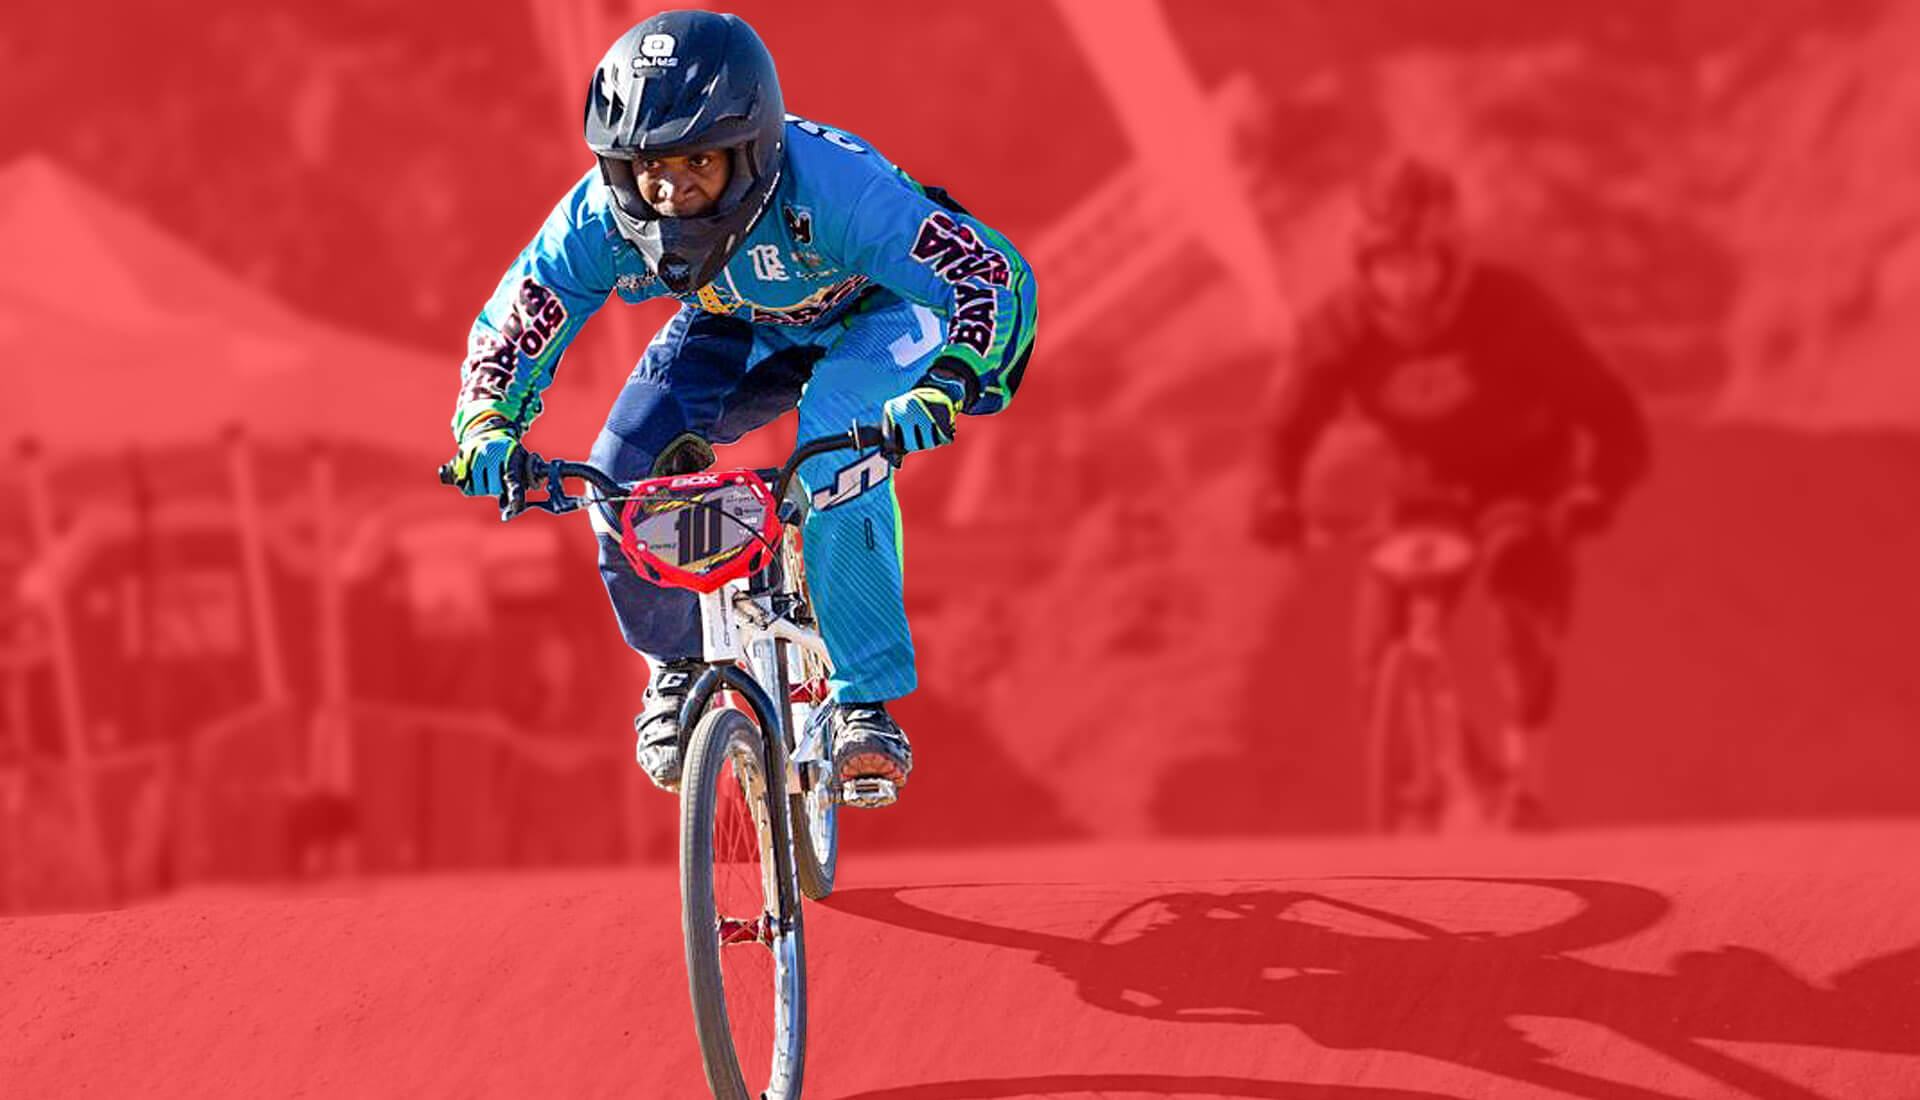 bay area bmxer banner red